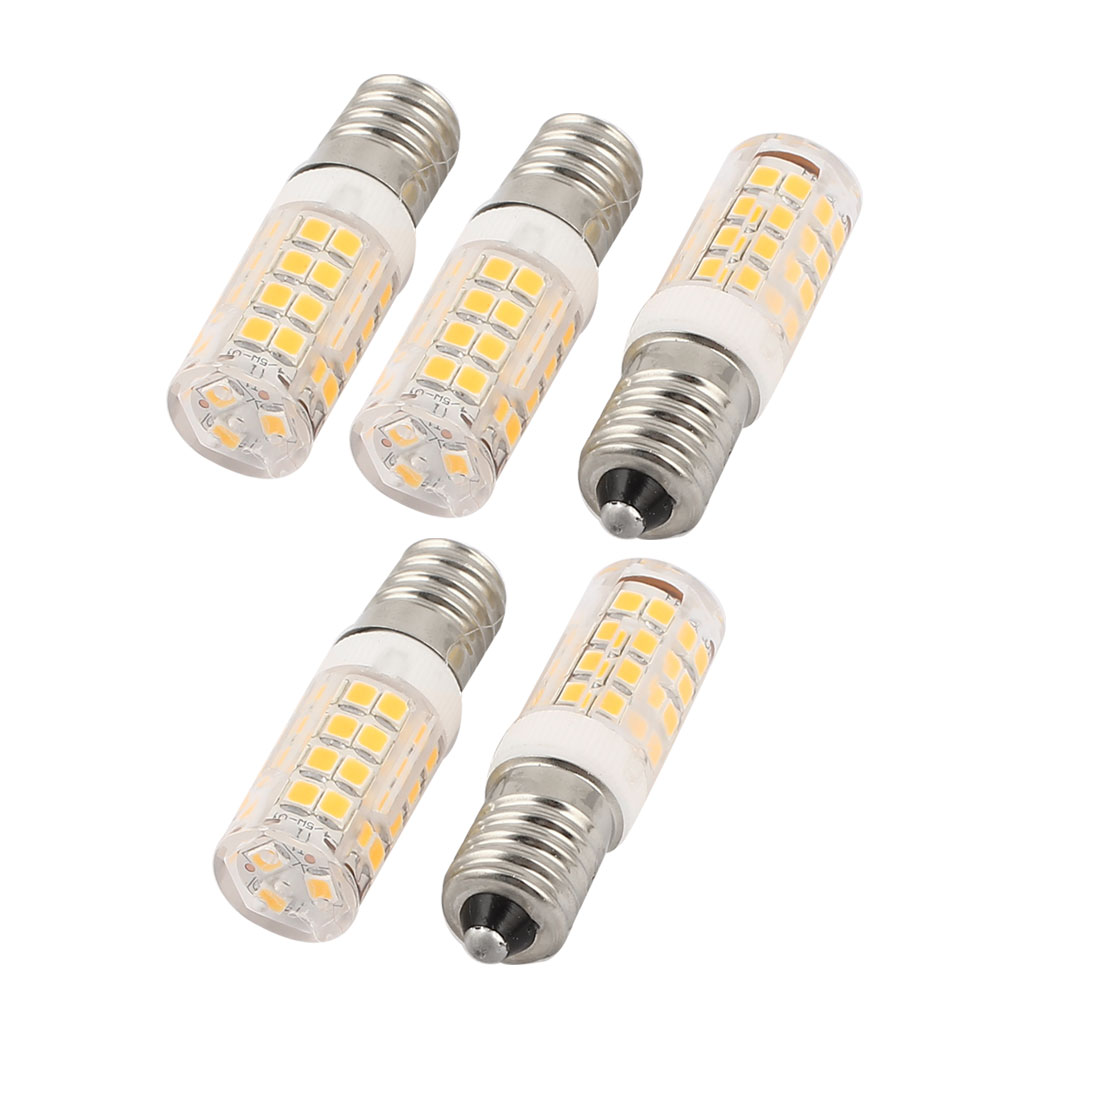 5 Pcs Energy Saving E14 Base 2835 SMD 3.5W 51 LED Bulb Lamp Light Warm White